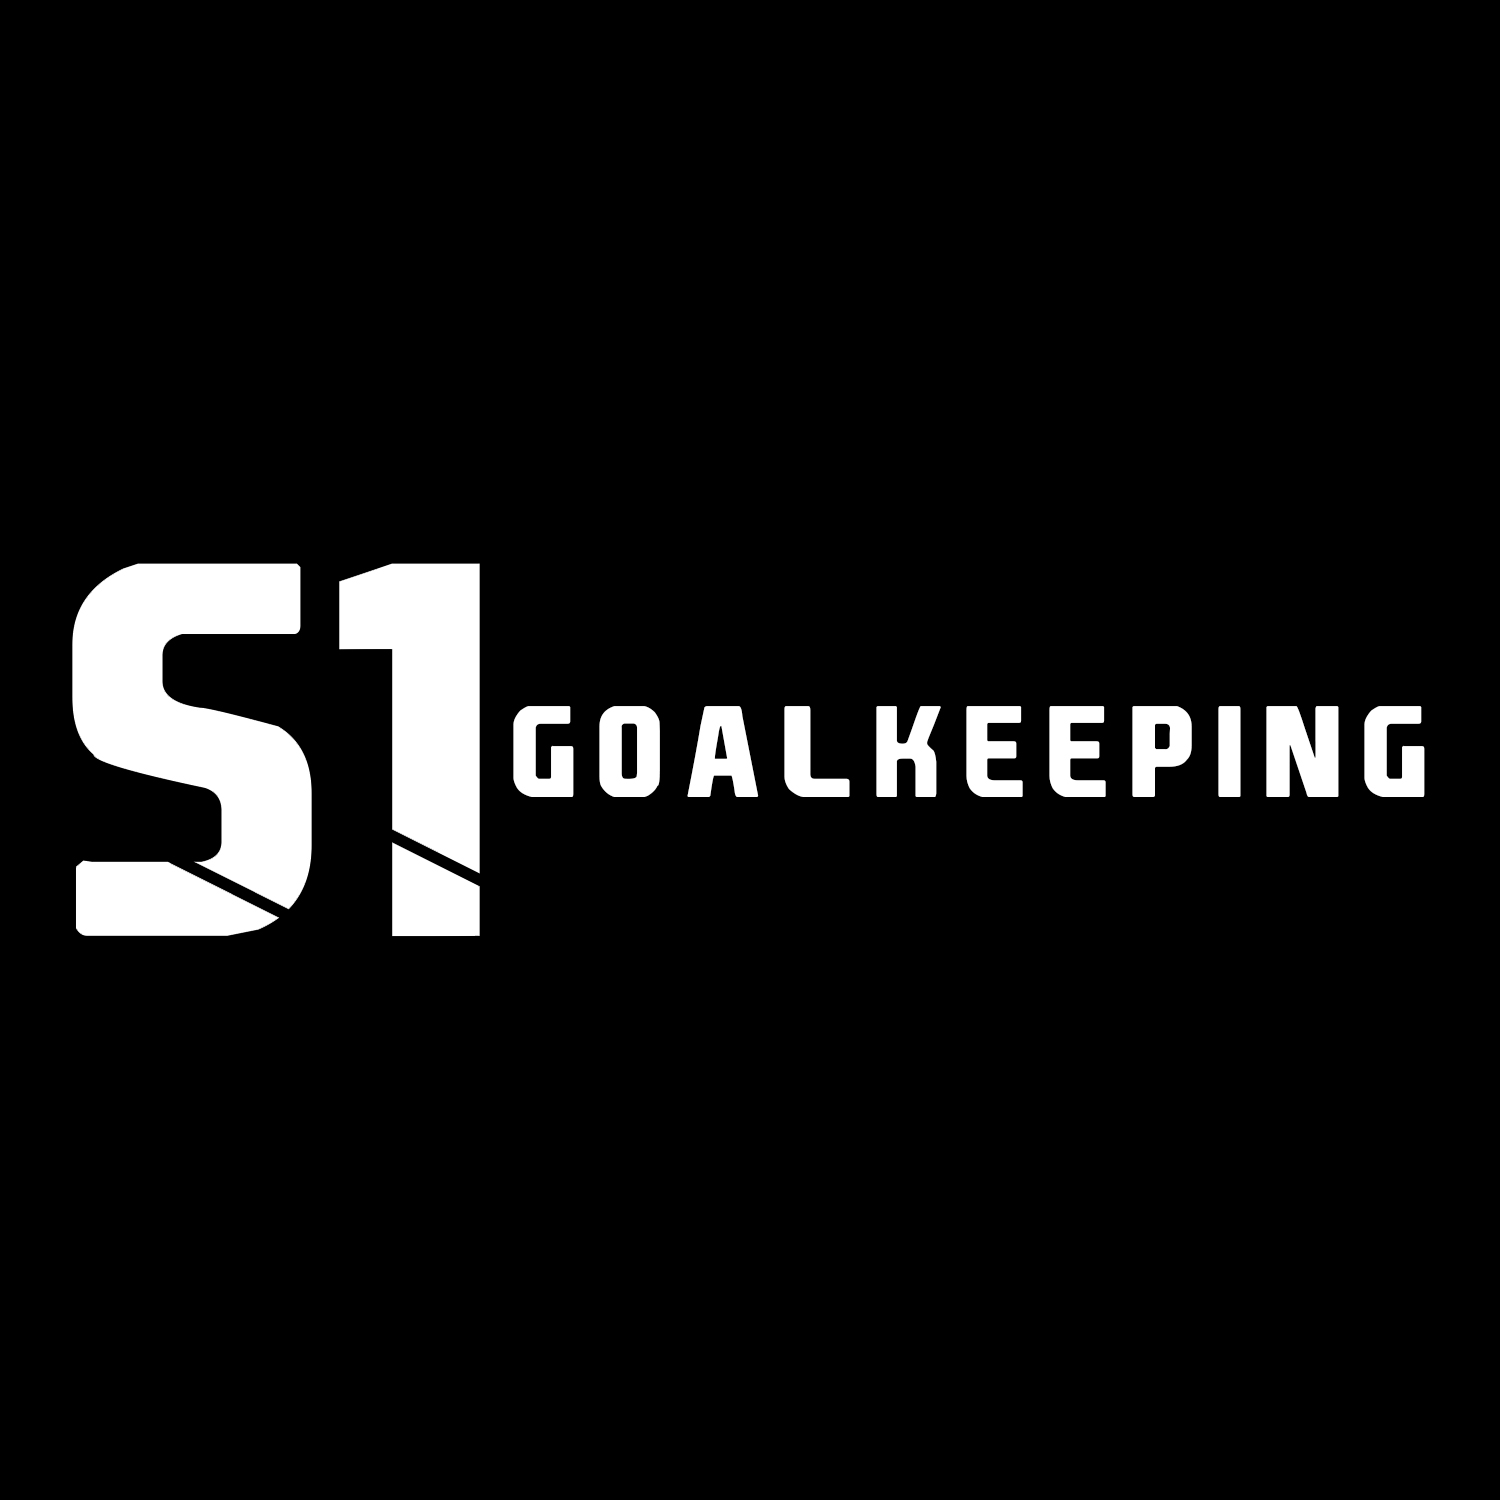 S1 Goalkeeping